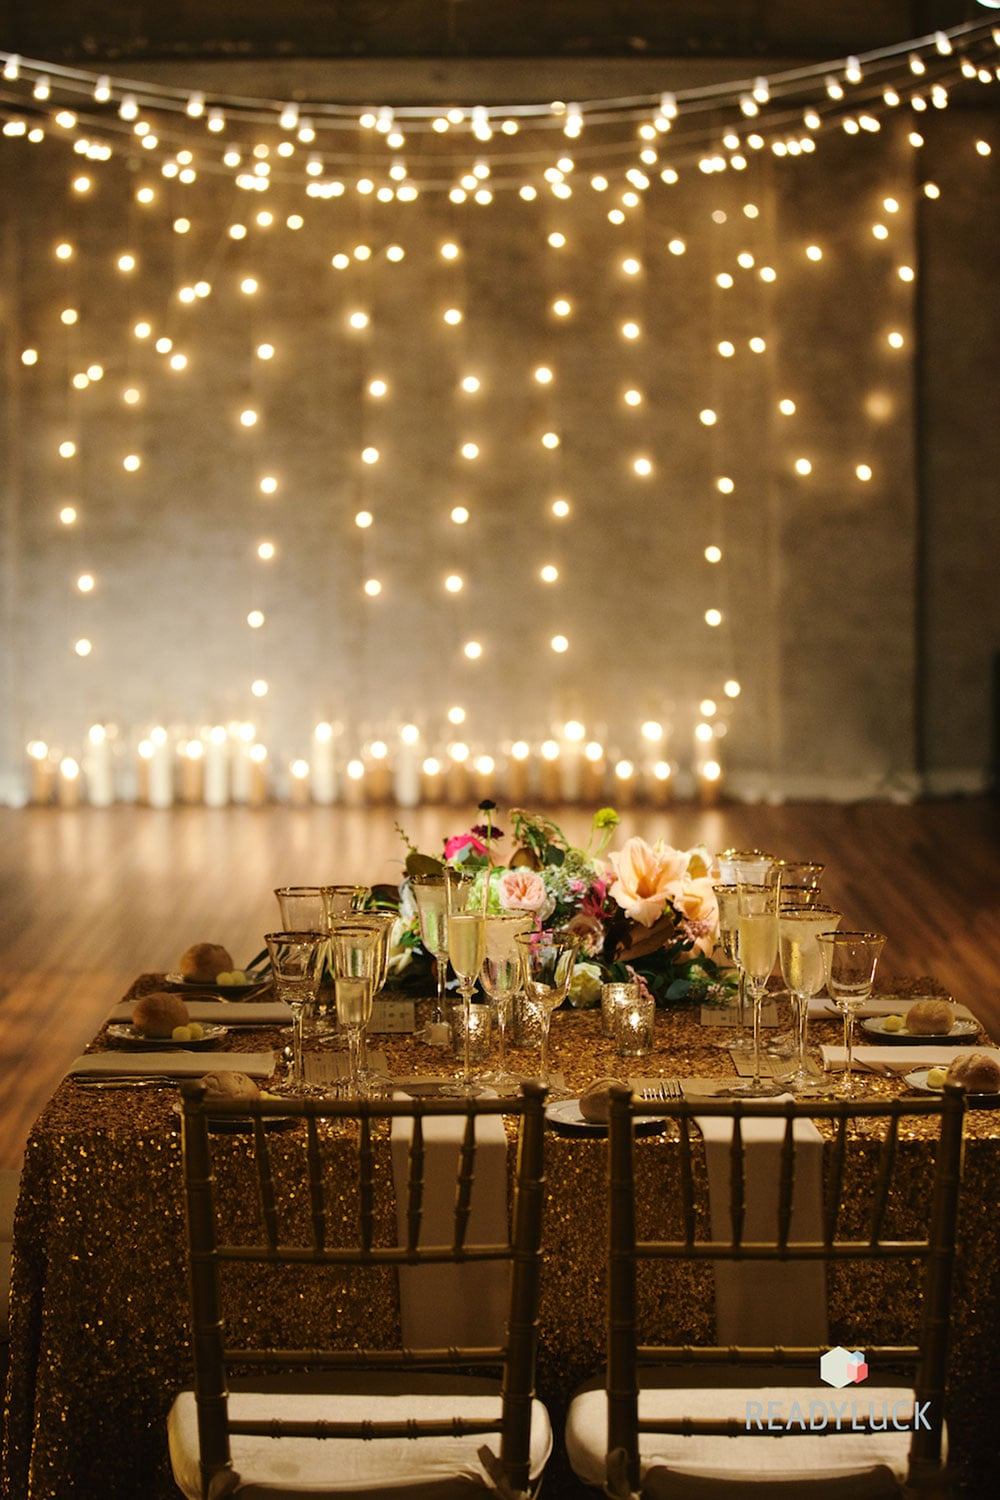 Gold sequin linen | Industrial warehouse wedding in Fishtown Philadelphia at Front & Palmer | Wedding planner & wedding design: Heart & Dash | Photo: Readyluck | Flowers: Vault + Vine